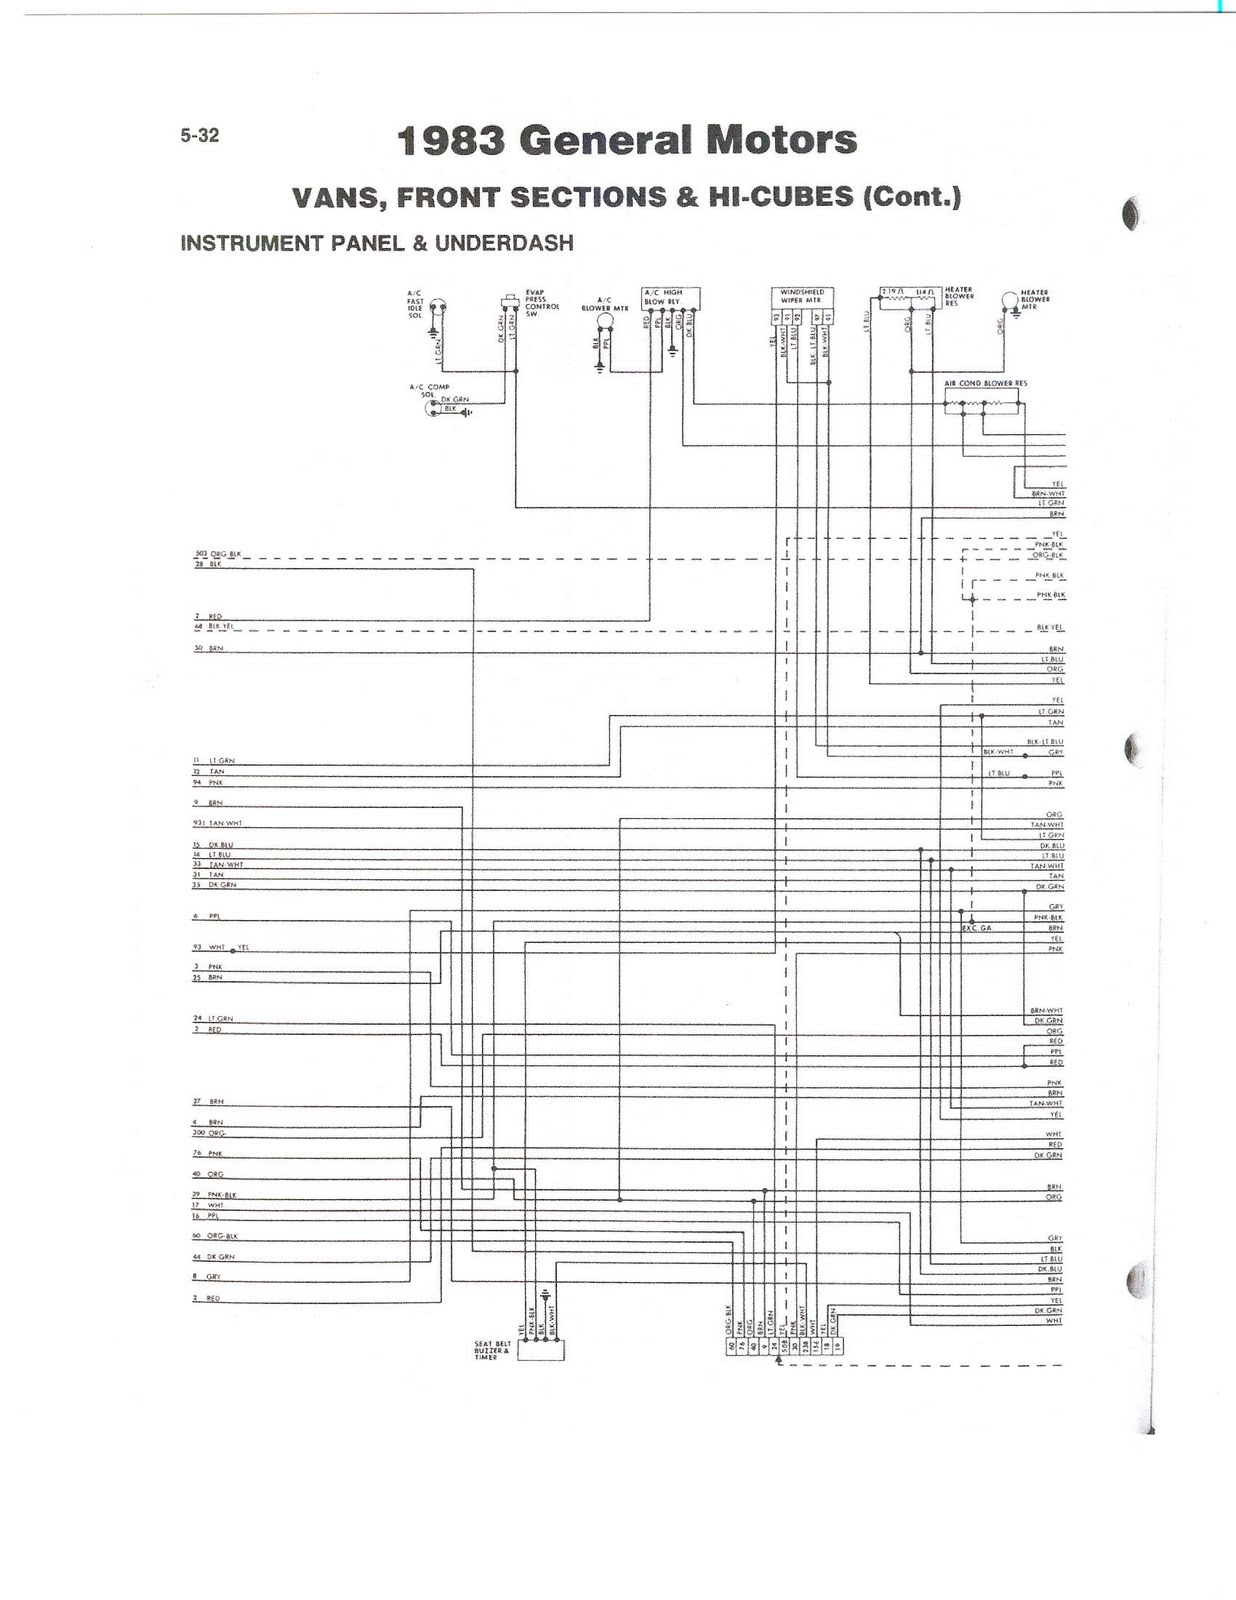 a41907 fleetwood providence wiring diagram | wiring resources  wiring resources